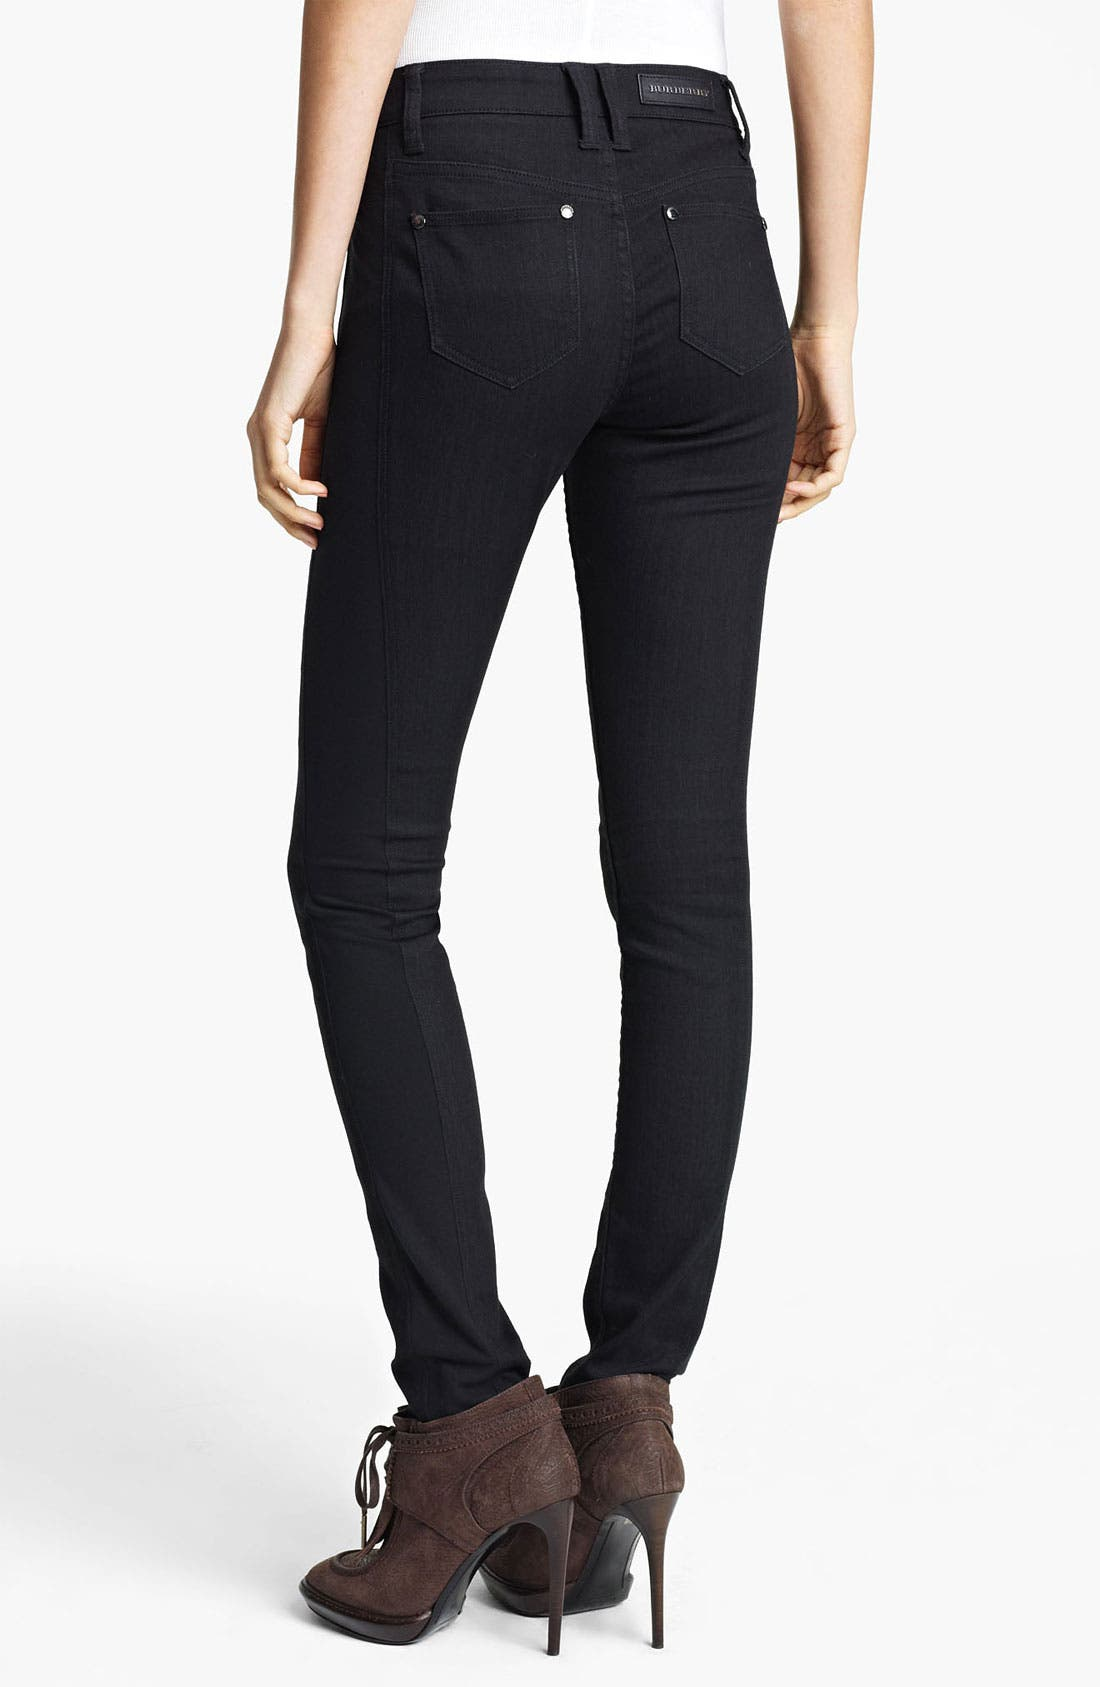 Alternate Image 1 Selected - Burberry London Skinny Stretch Jeans